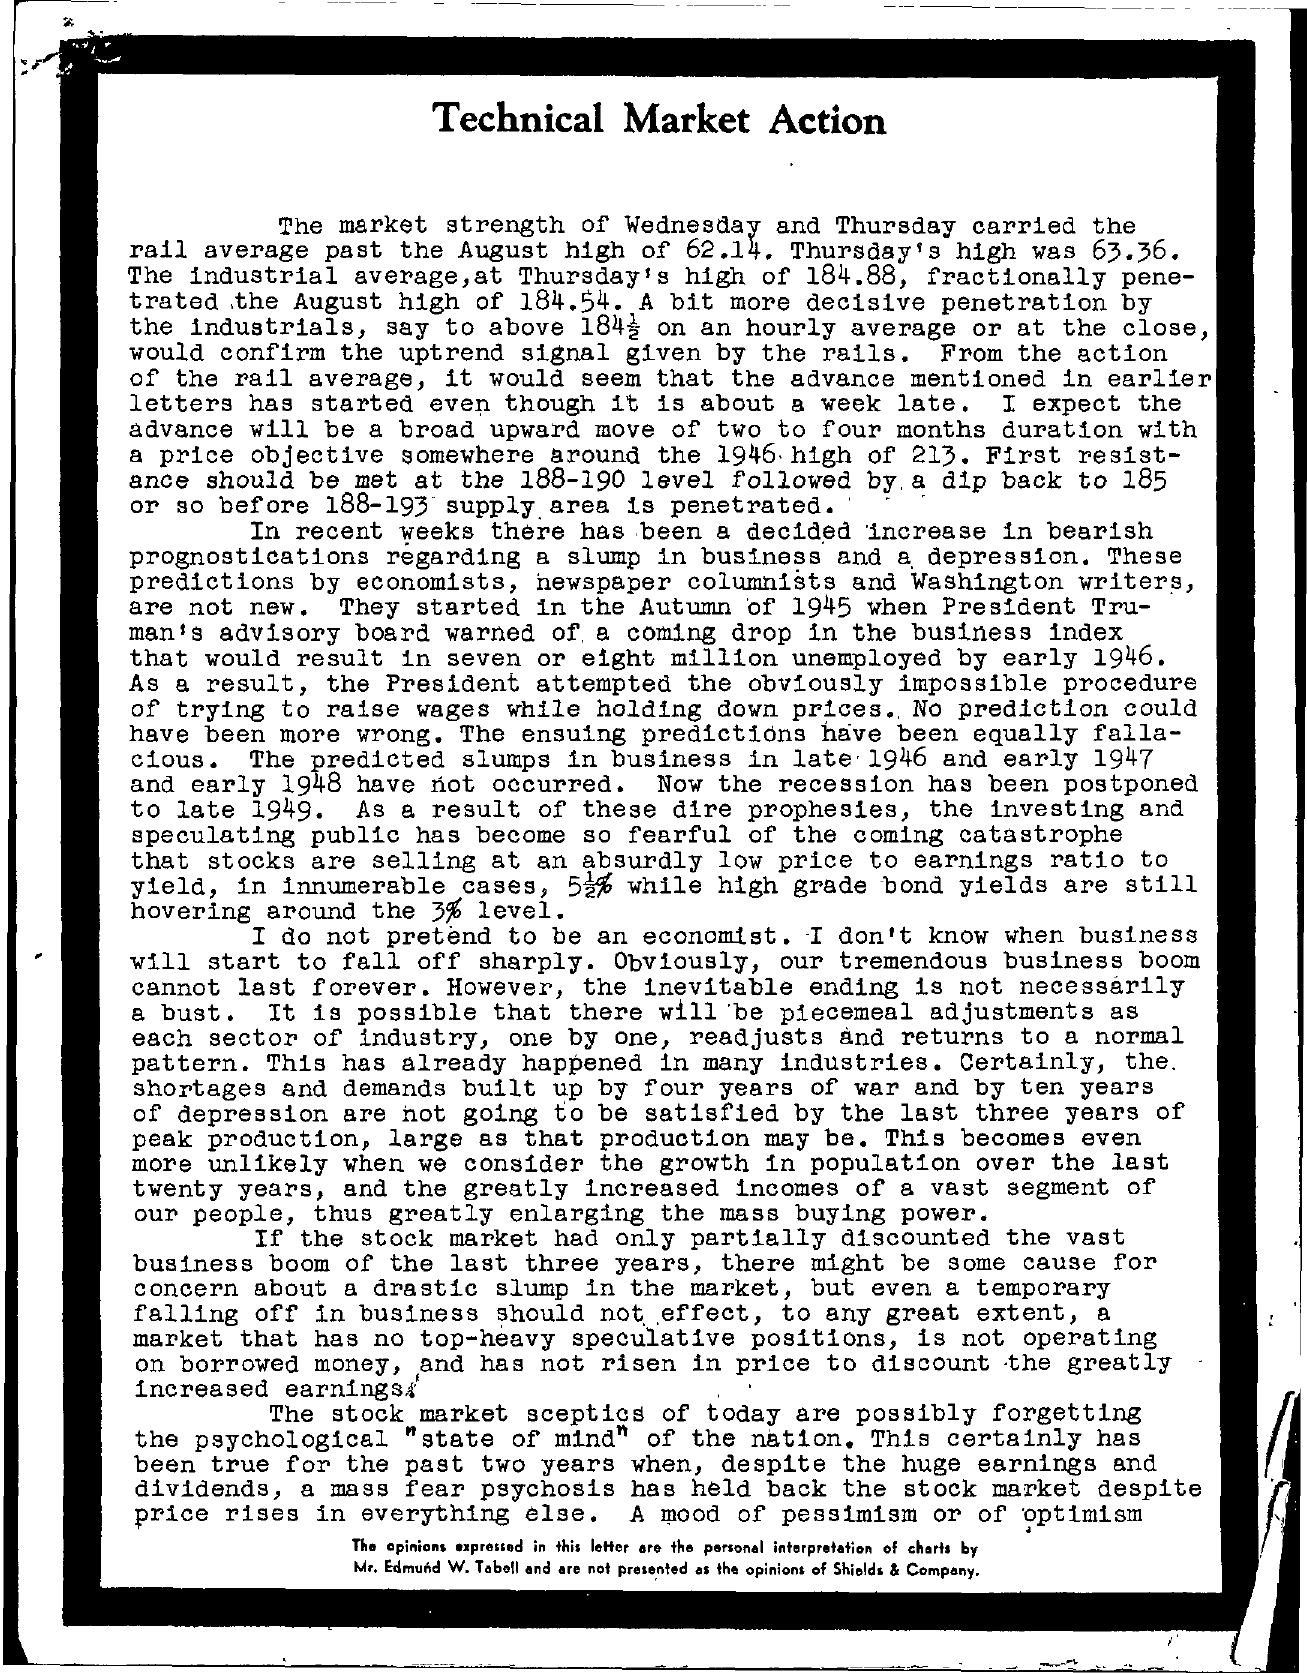 Tabell's Market Letter - September 02, 1948 page 1